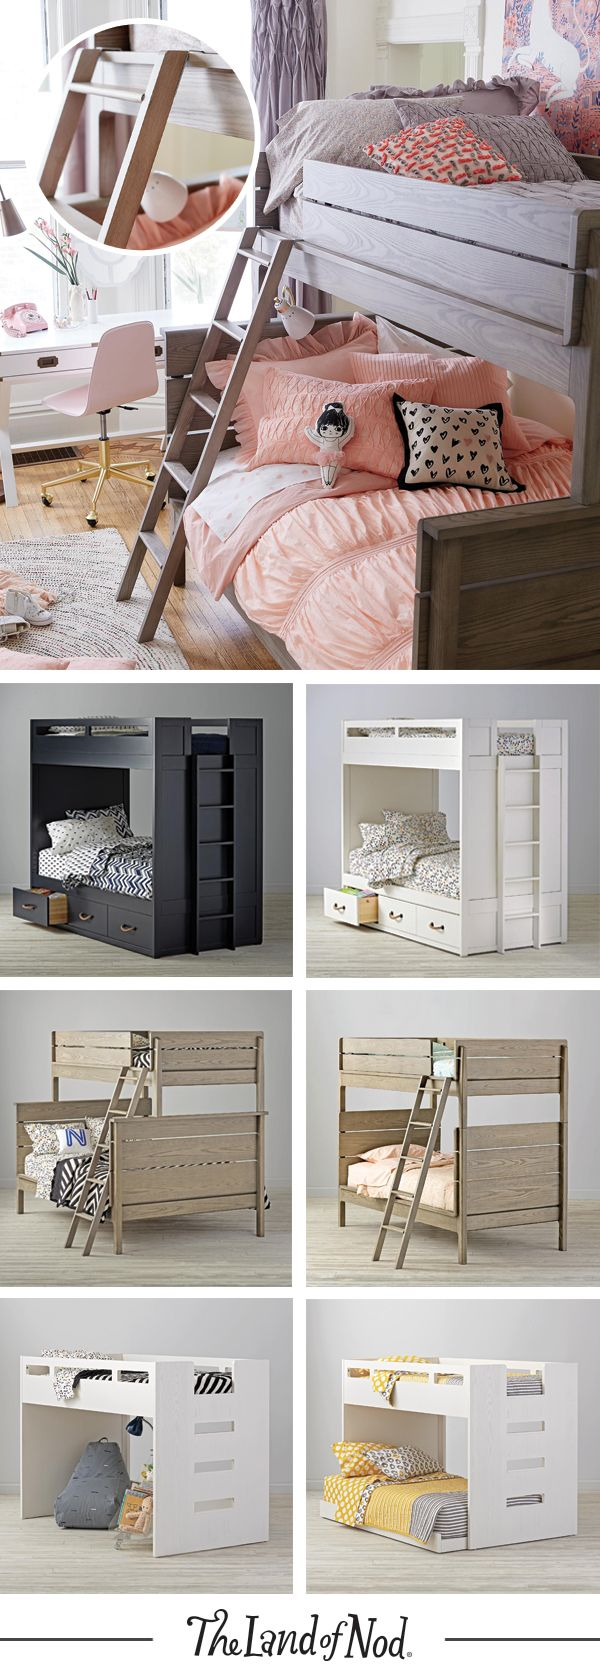 Searching For Kids Bedroom Furniture Thatu0027s Stylish And A Perfect Fit For  Any Sized Room?